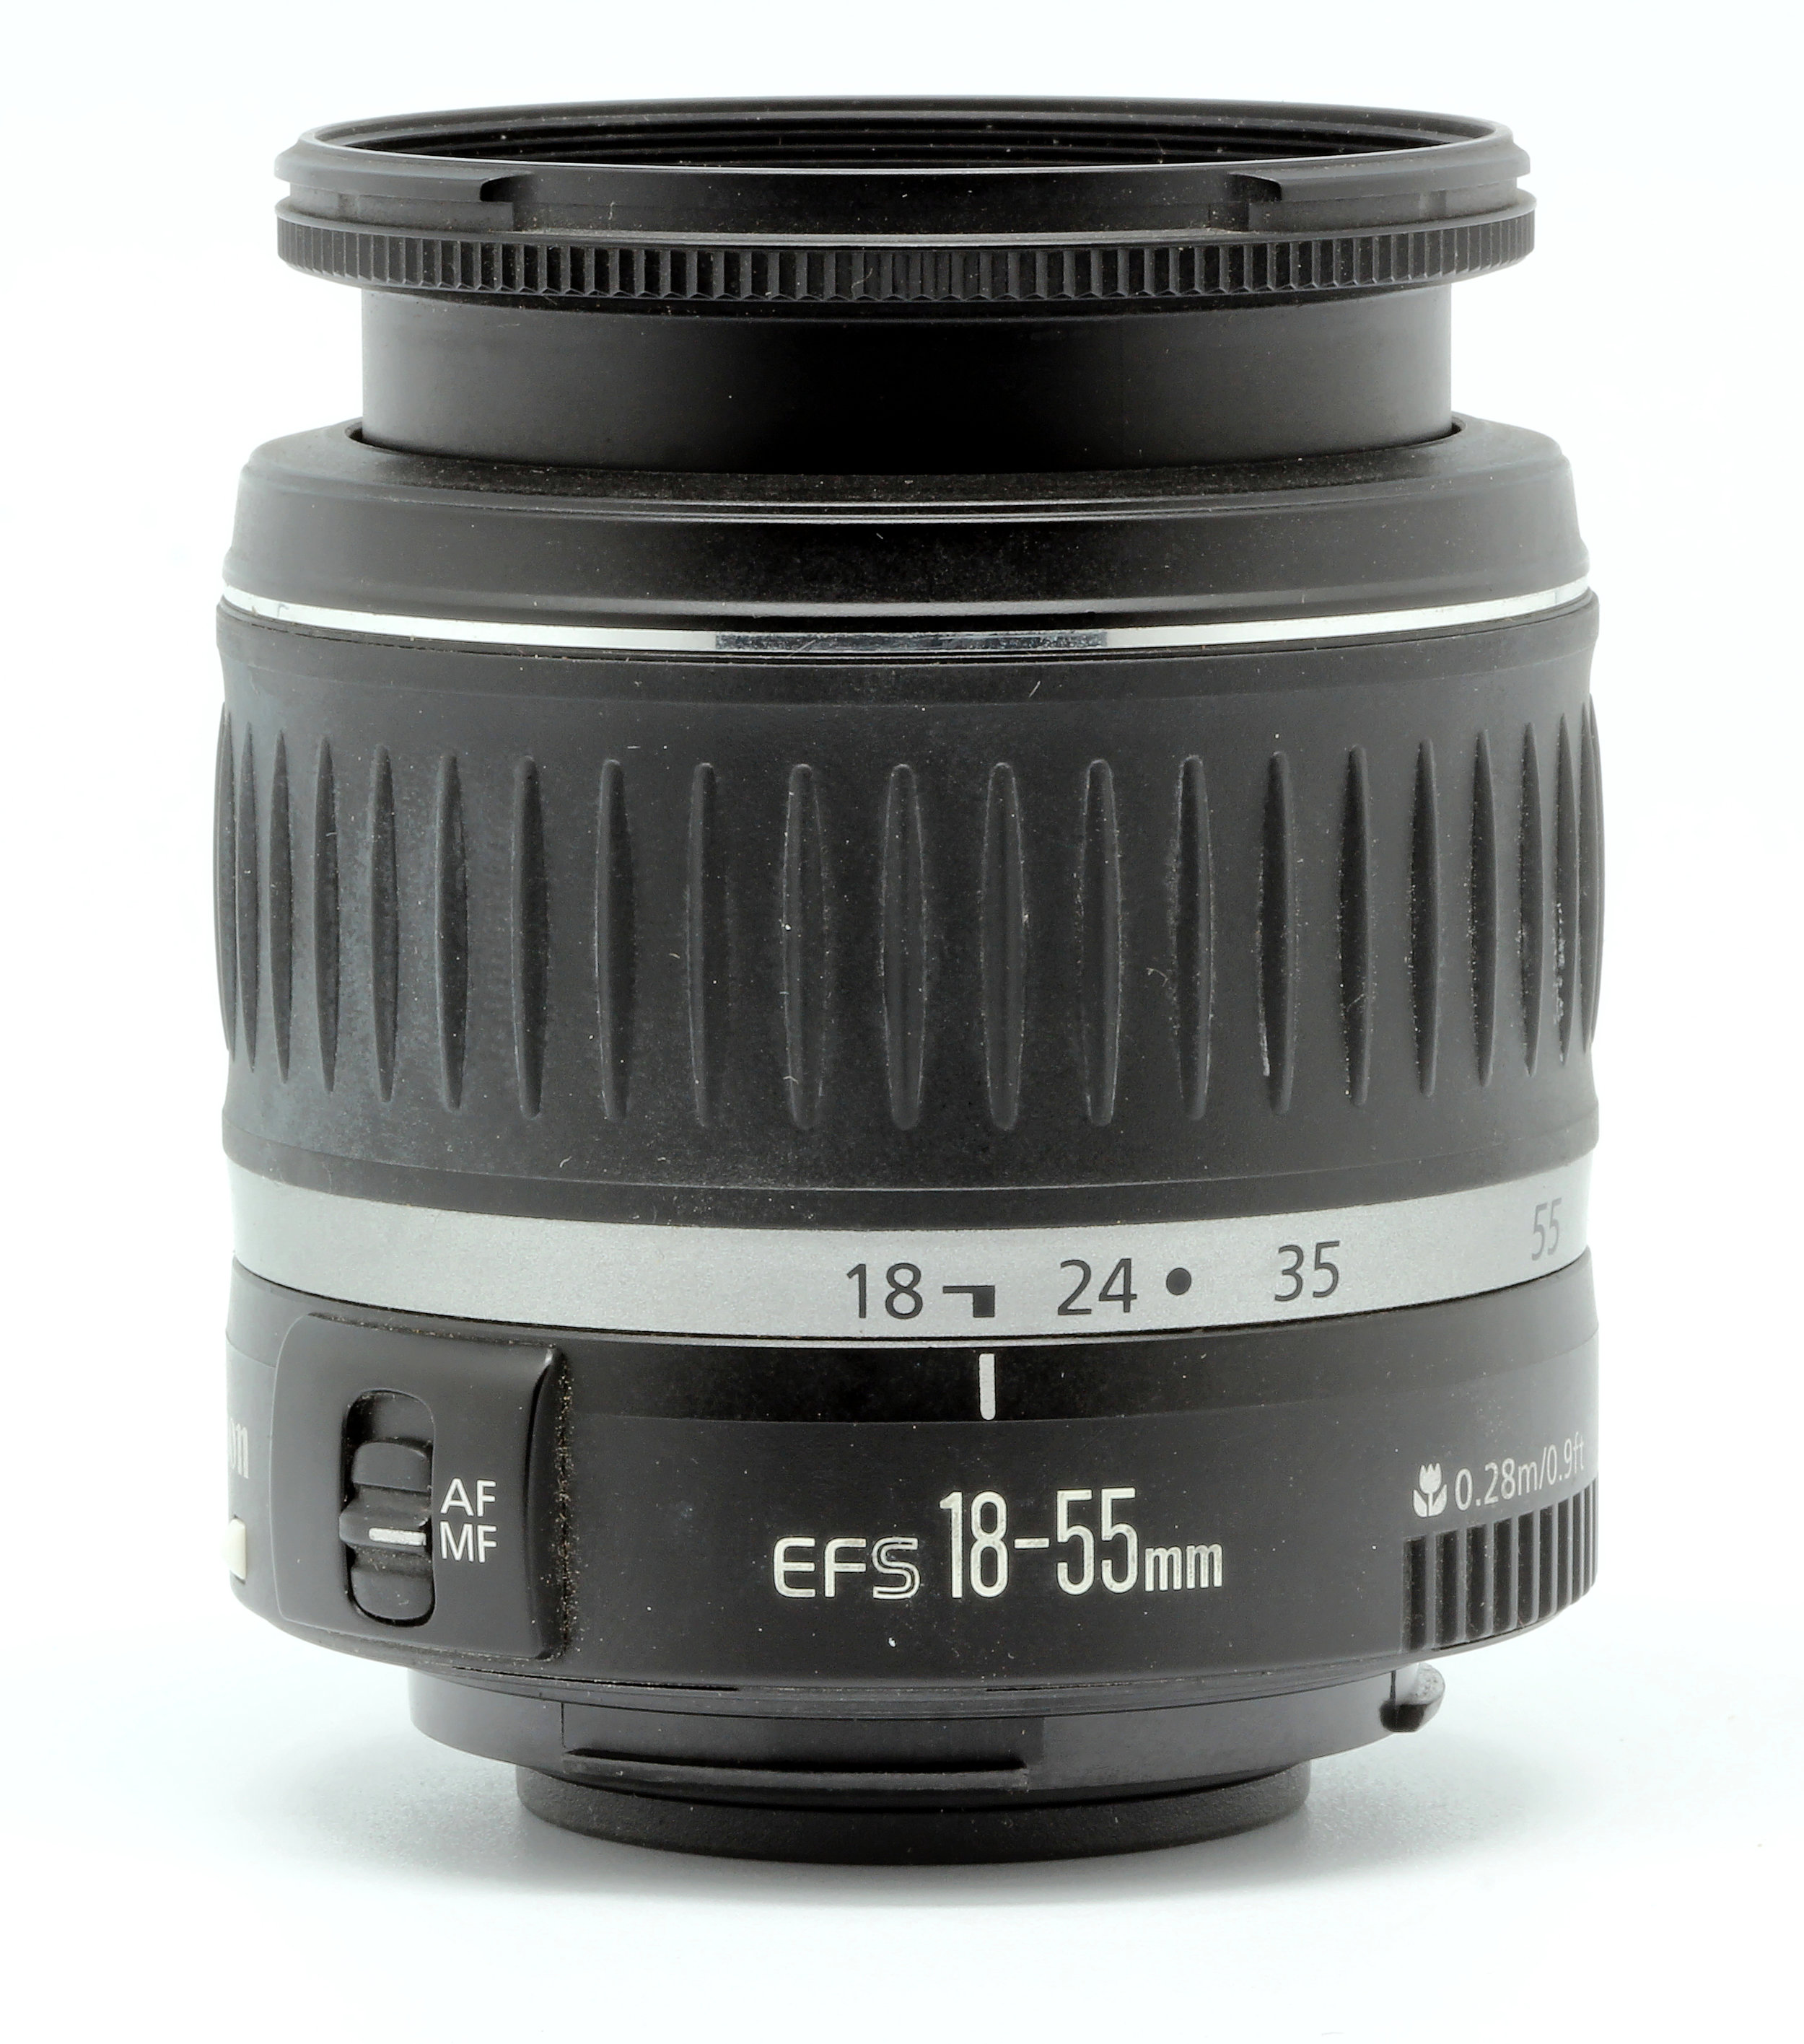 This is the kit lens that traditionally comes with the T3i, and through all the trials i've thrown at it, it has always performed well. Works great in almost every situation.  Purchase it at:  https://amzn.to/2NPi8xA